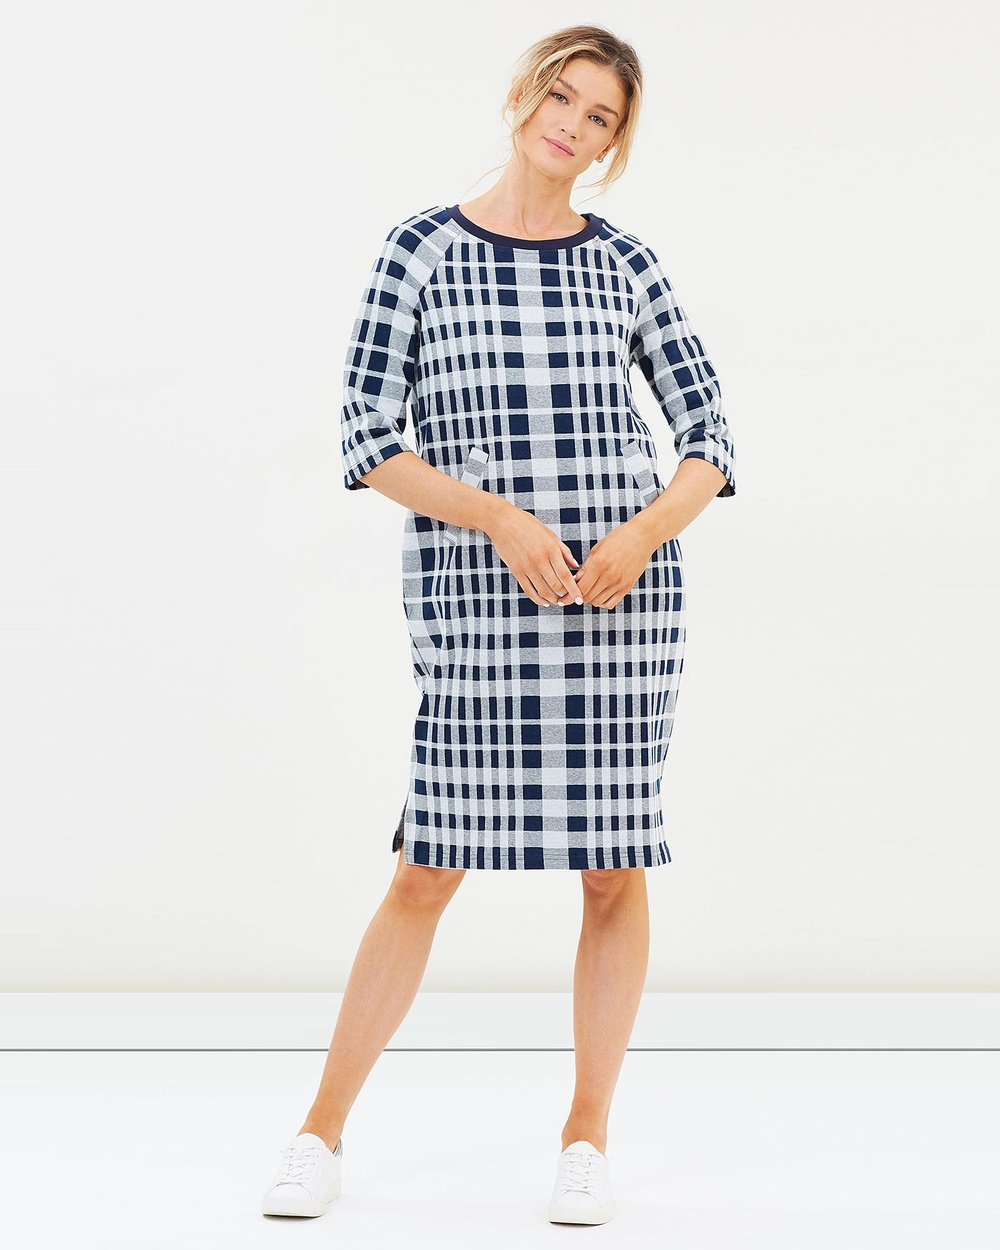 Lincoln St The Cocoon Dress Dresses Navy Check The Cocoon Dress